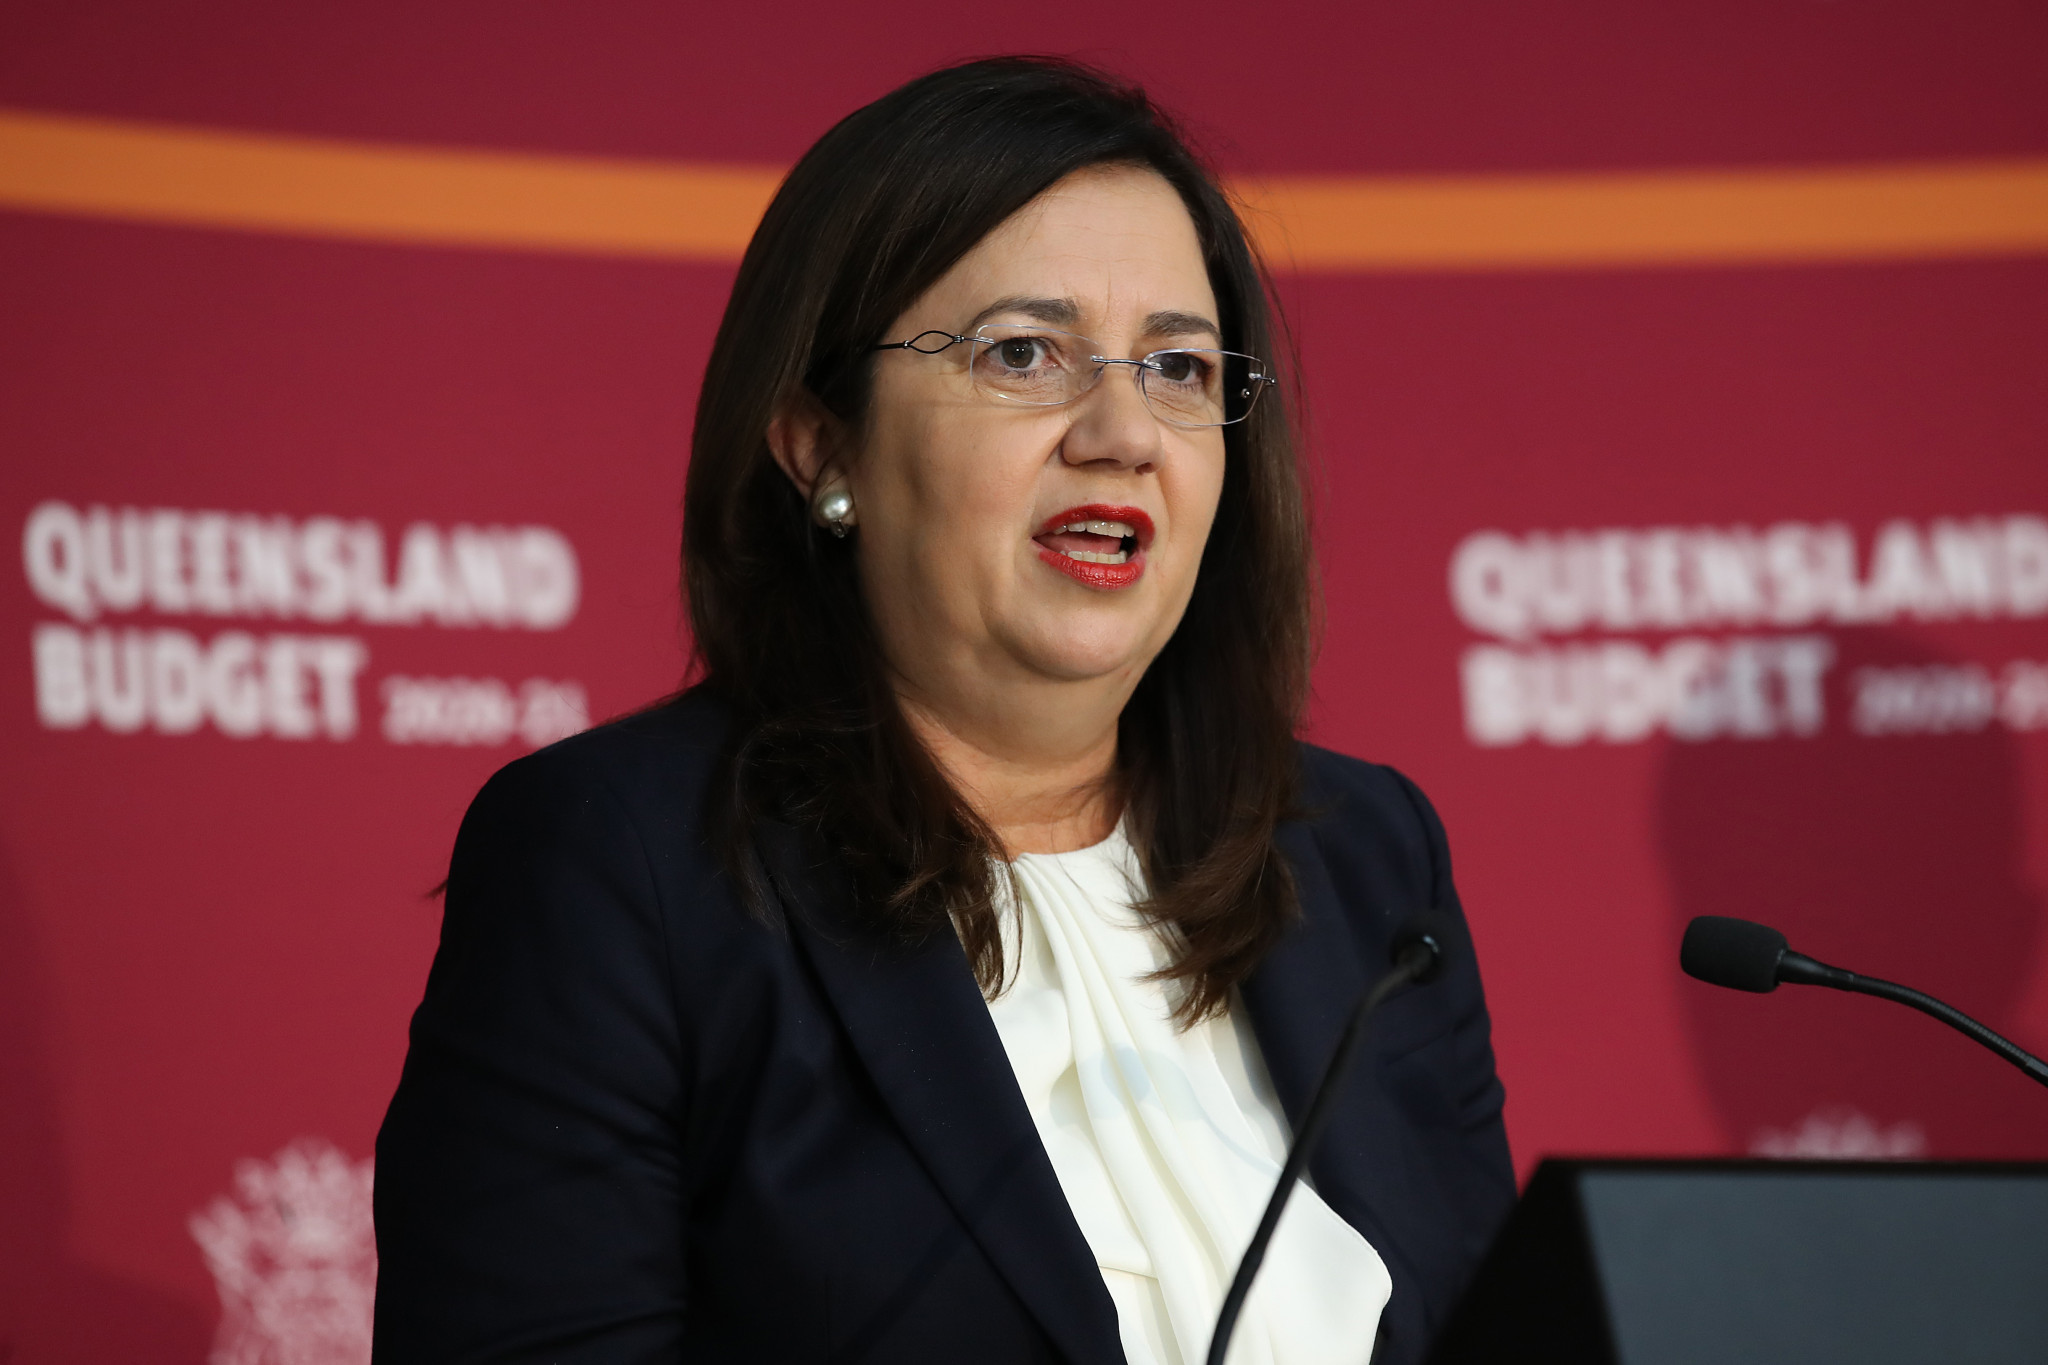 Queensland revives bid for 2032 Olympics and Paralympics